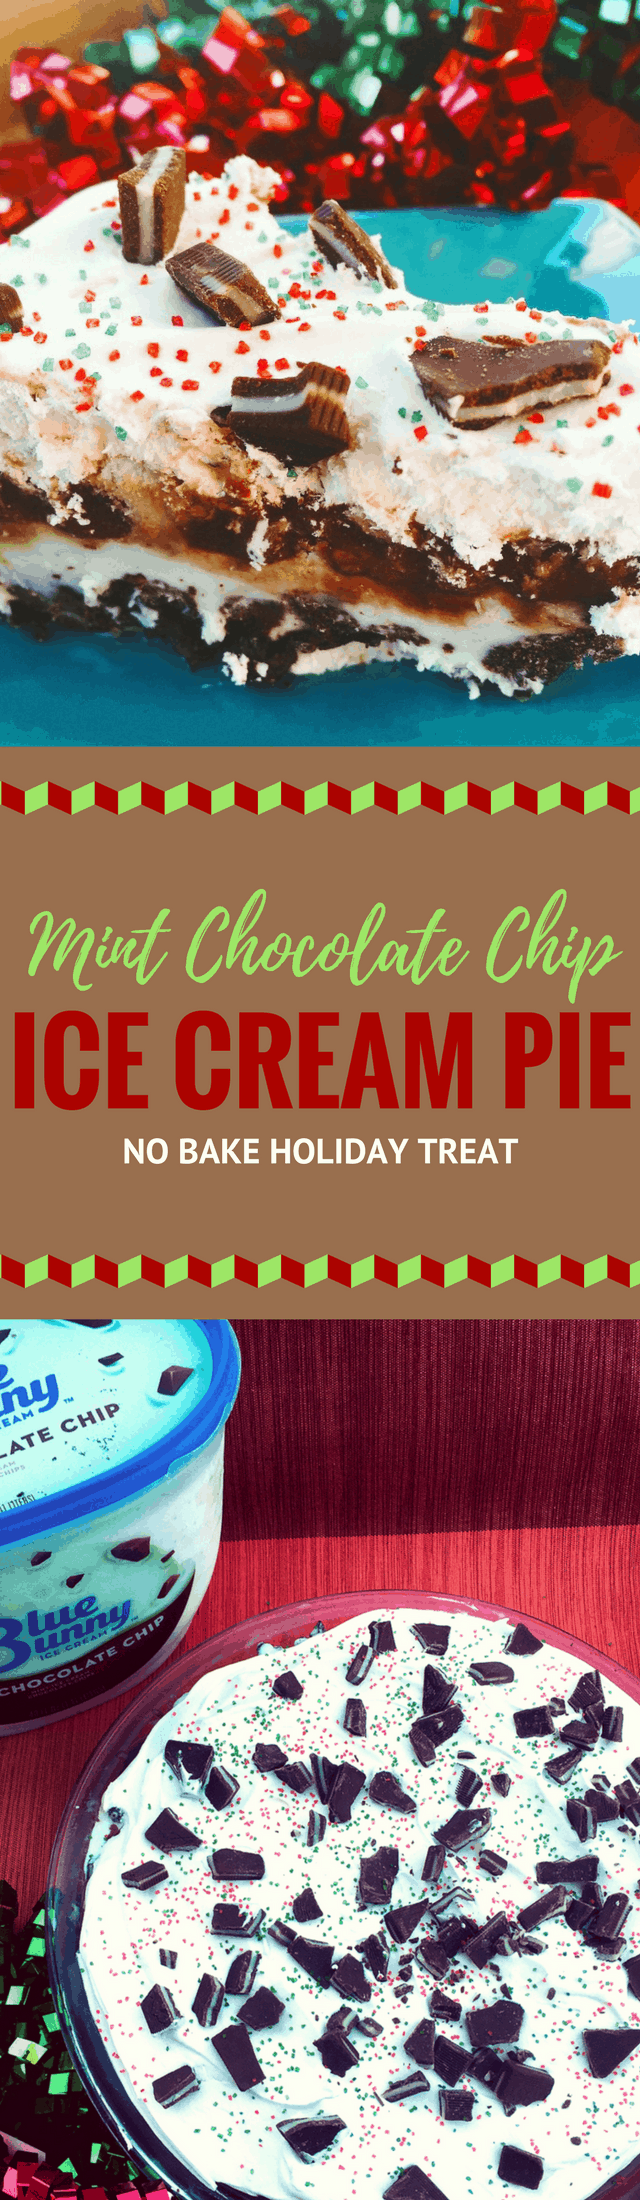 Easy no bake Mint Chocolate Chip Ice Cream Pie perfect with Blue Bunny Ice Cream. Holiday Treats | Holiday Parties | Desserts